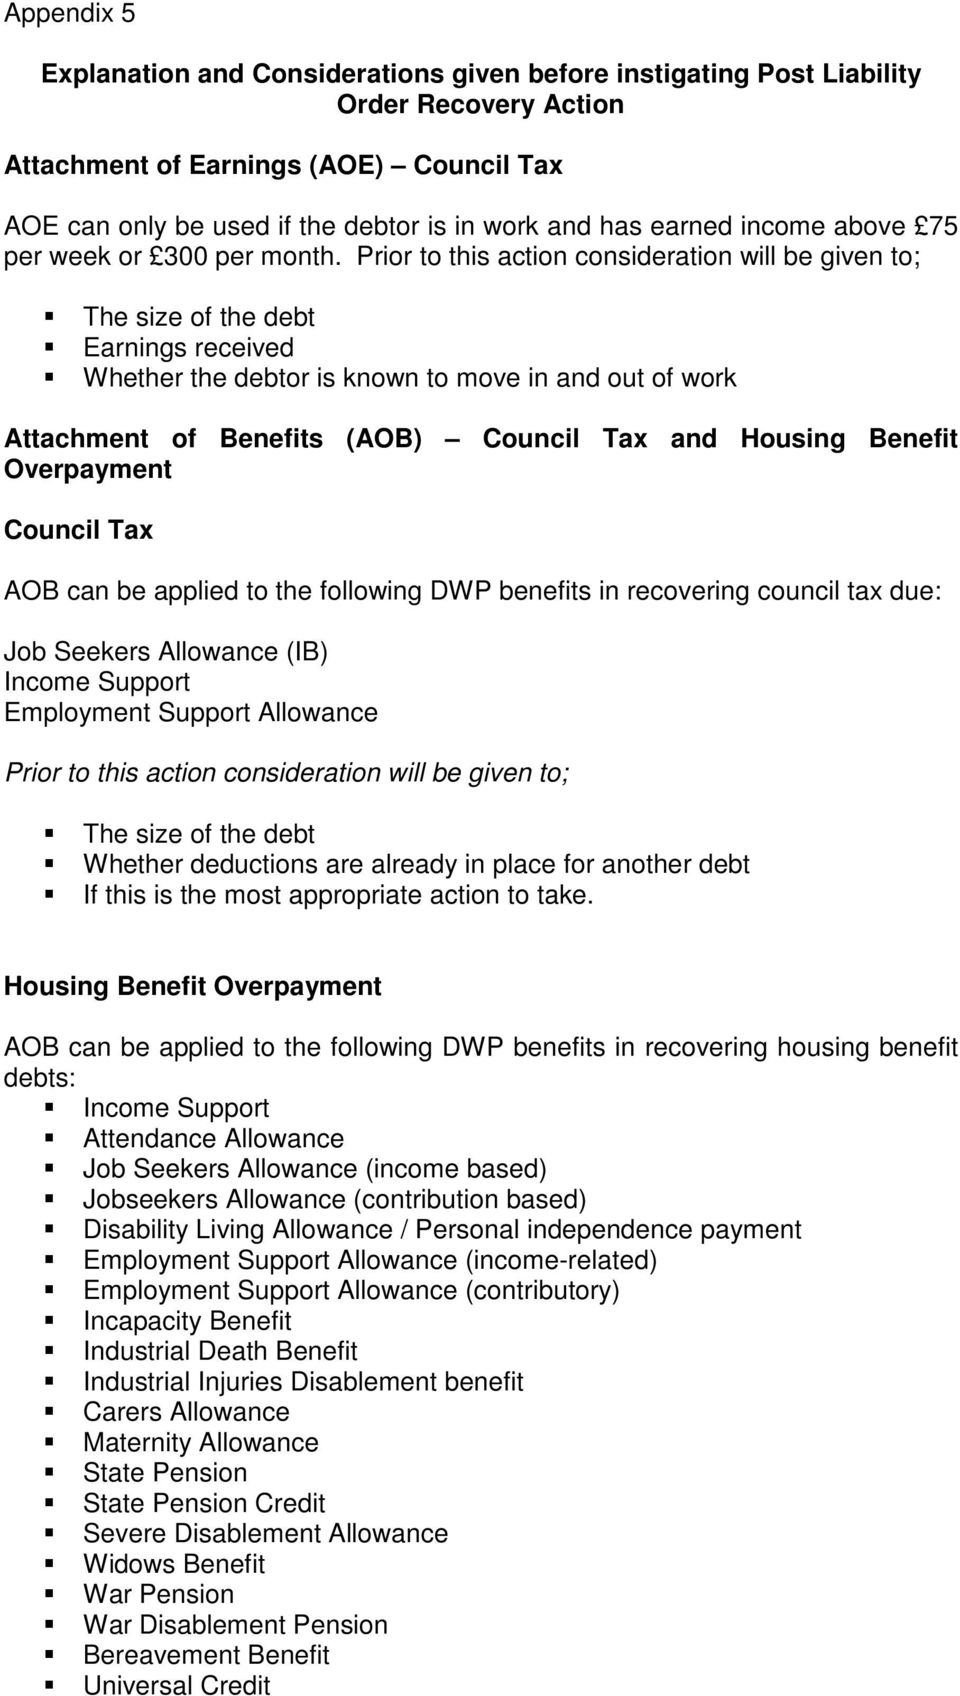 Prior to this action consideration will be given to; The size of the debt Earnings received Whether the debtor is known to move in and out of work Attachment of Benefits (AOB) Council Tax and Housing